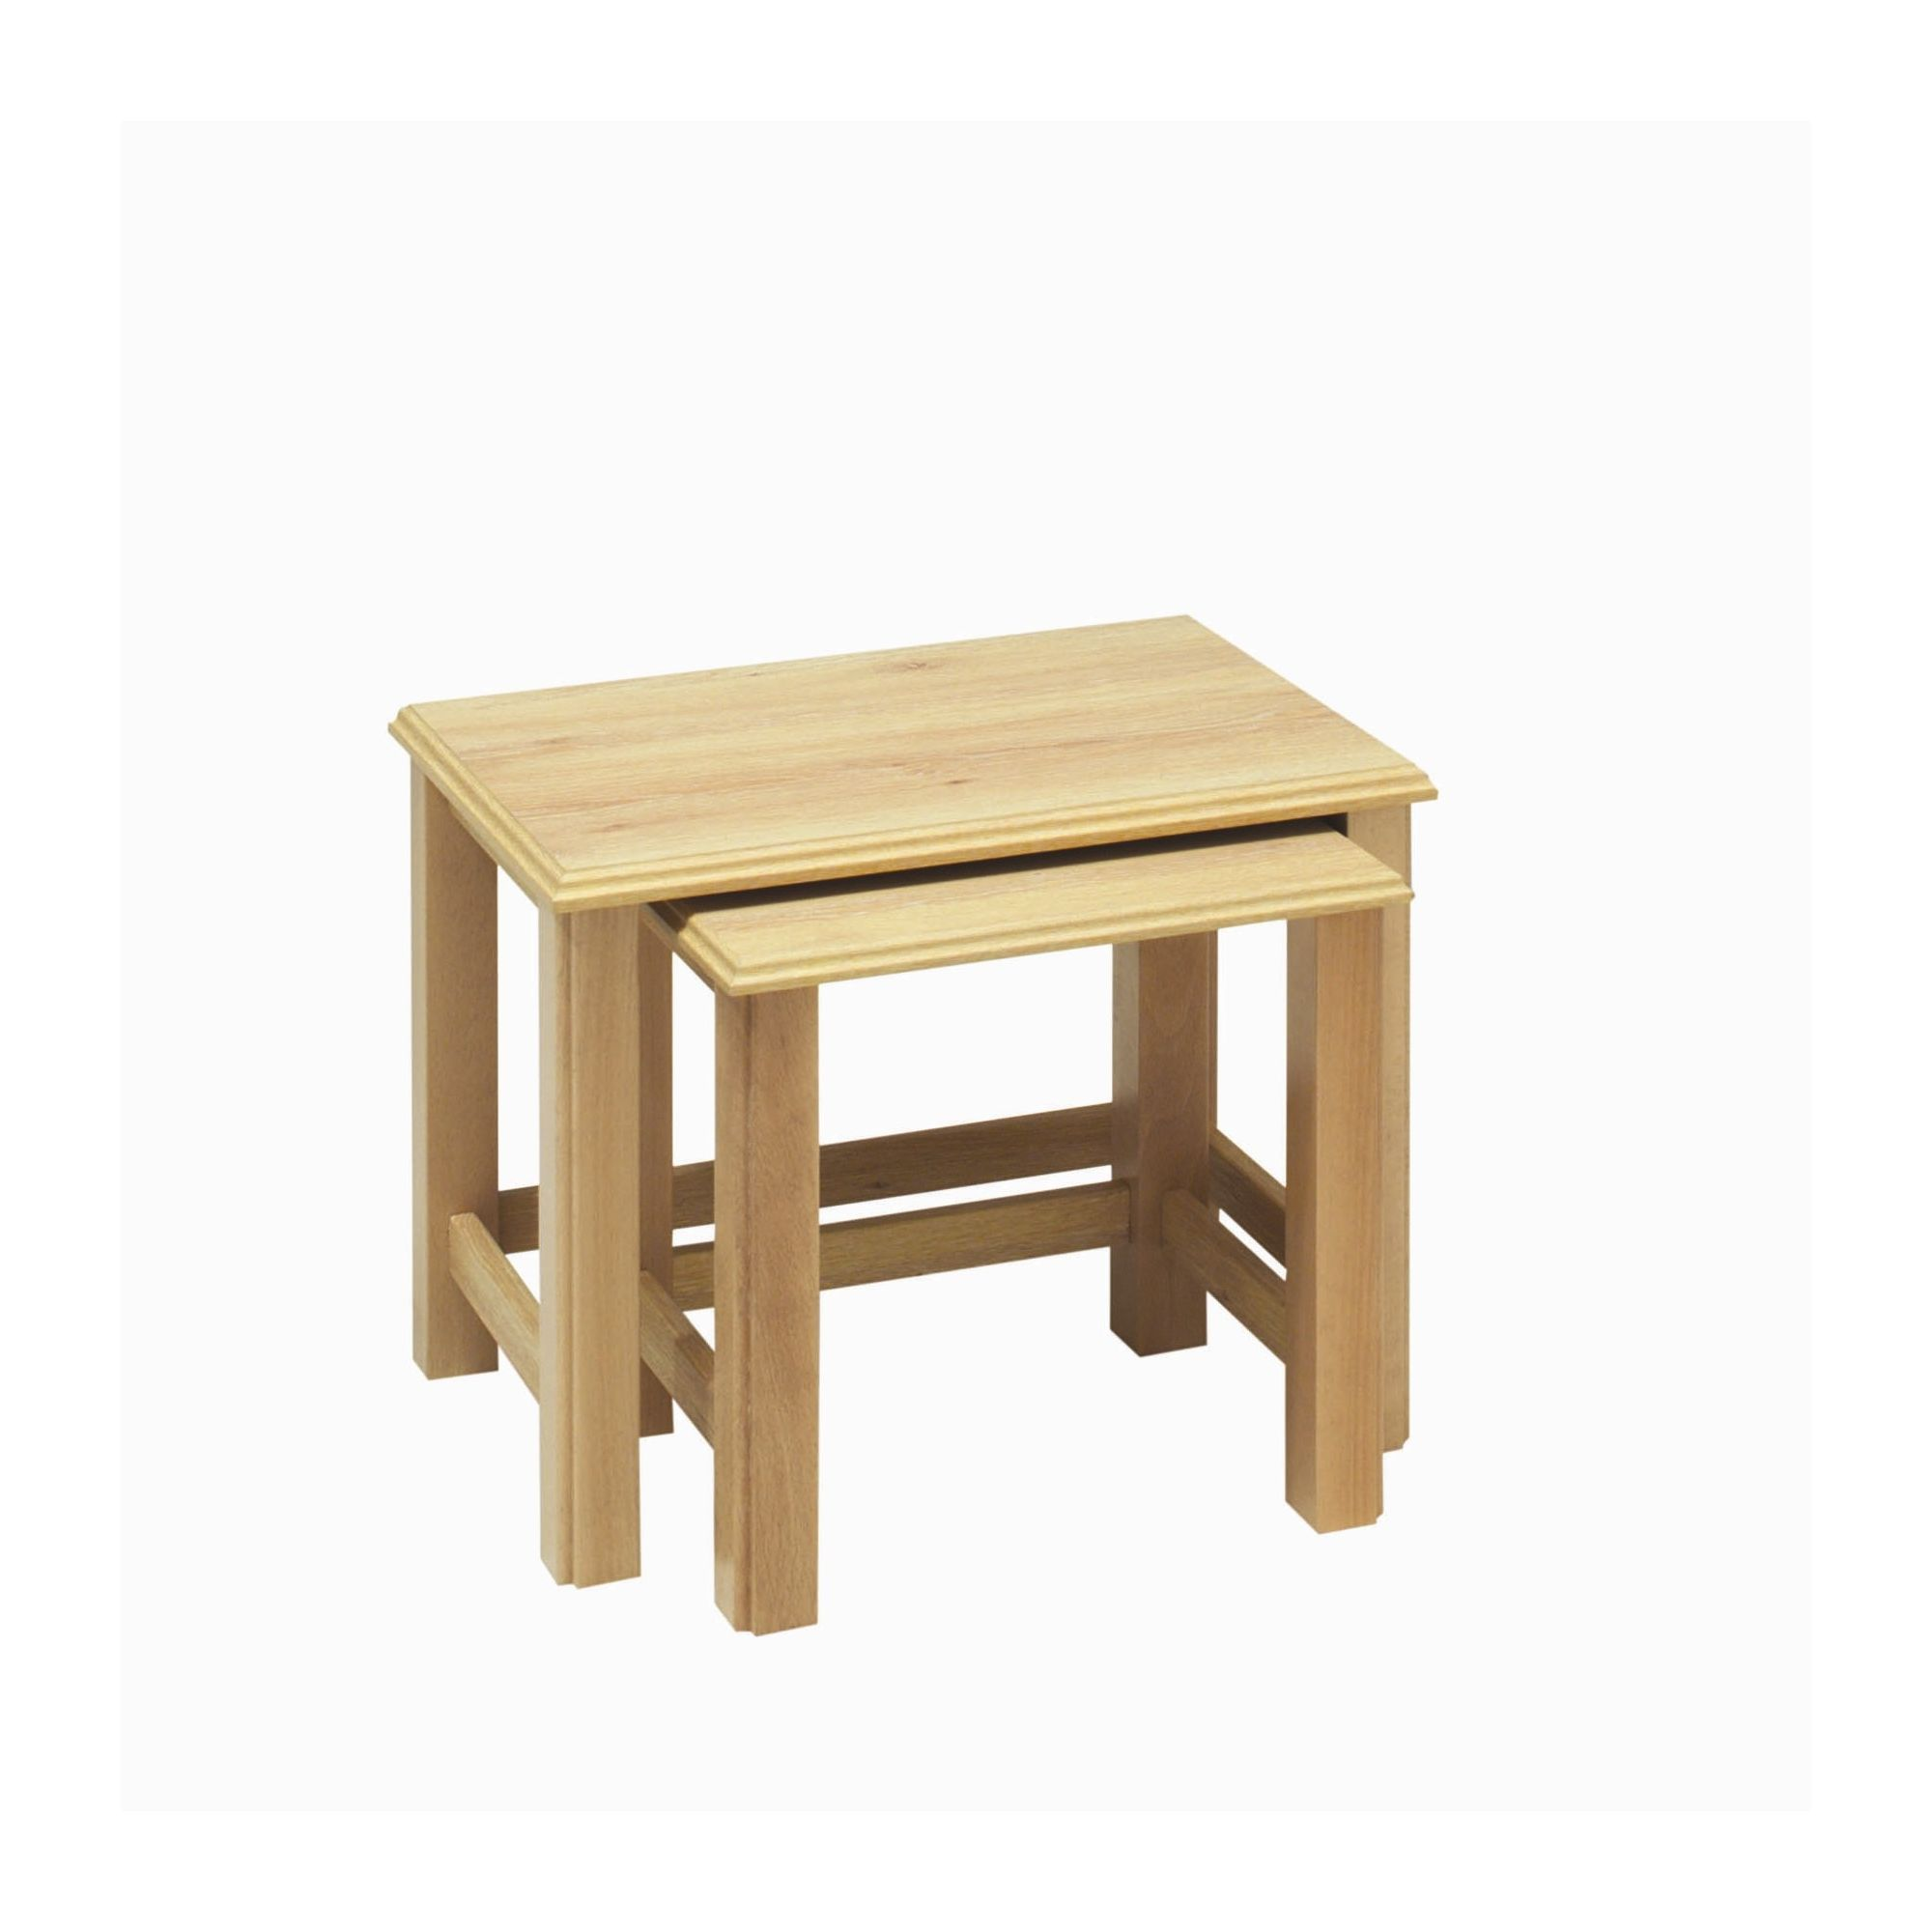 Caxton Driftwood Nest of Two Table in Limed Oak at Tesco Direct